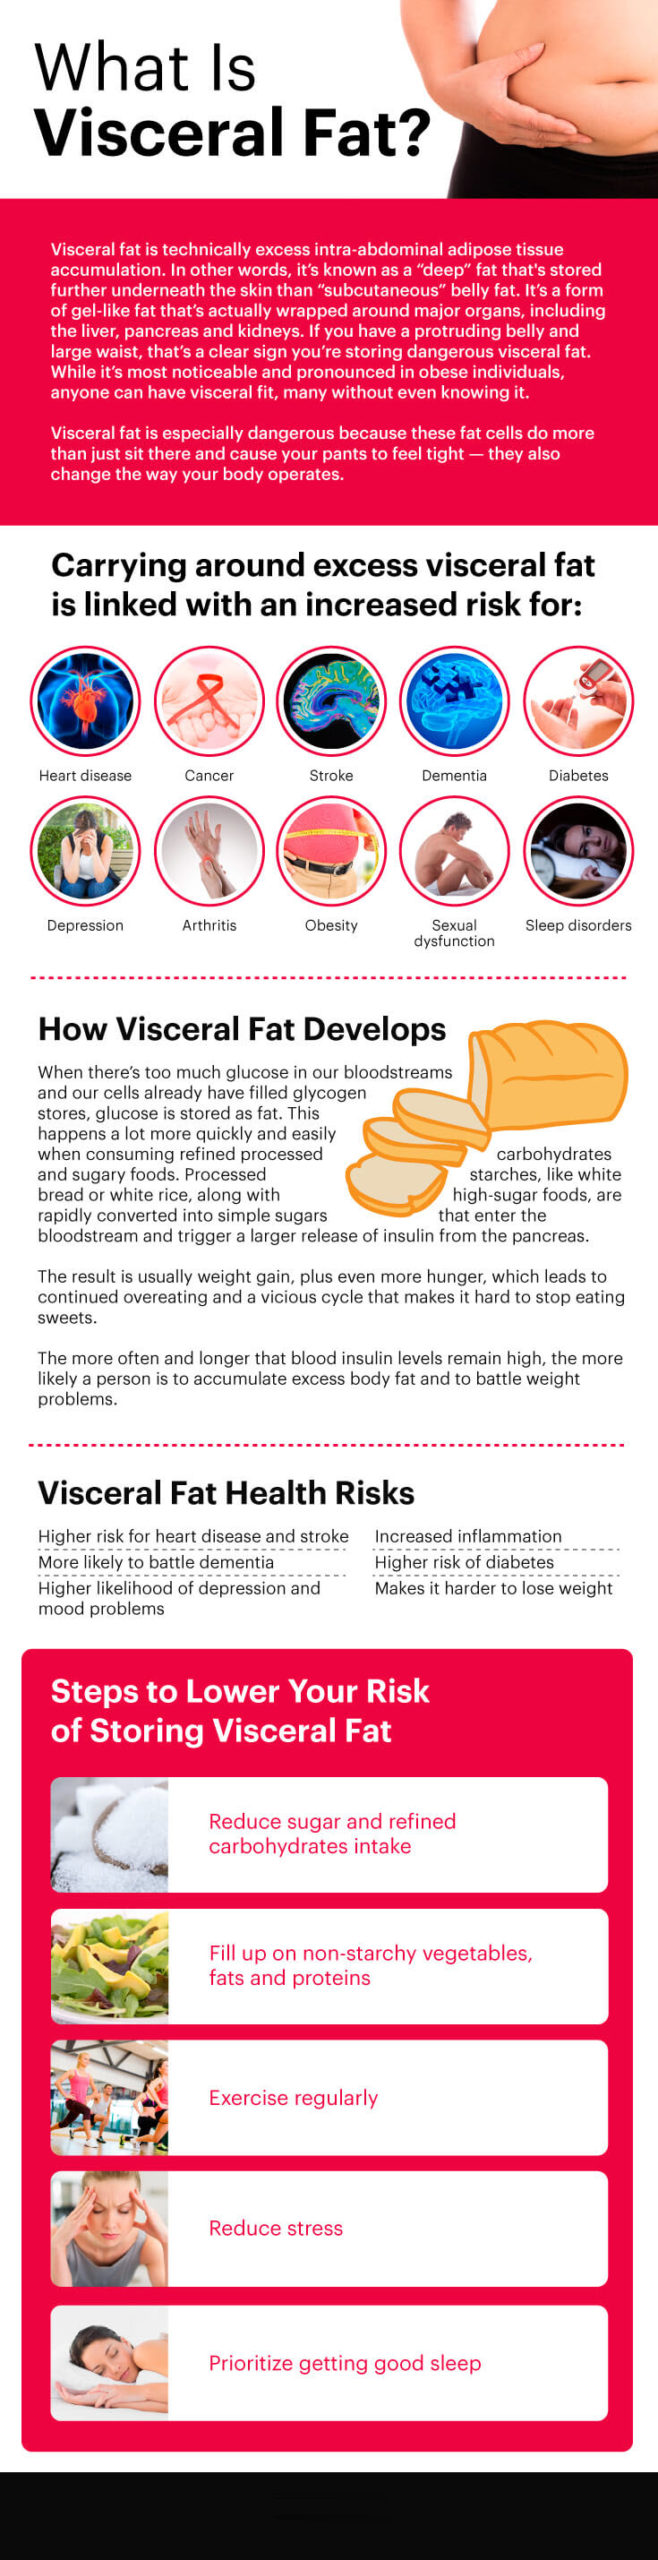 Visceral fat facts